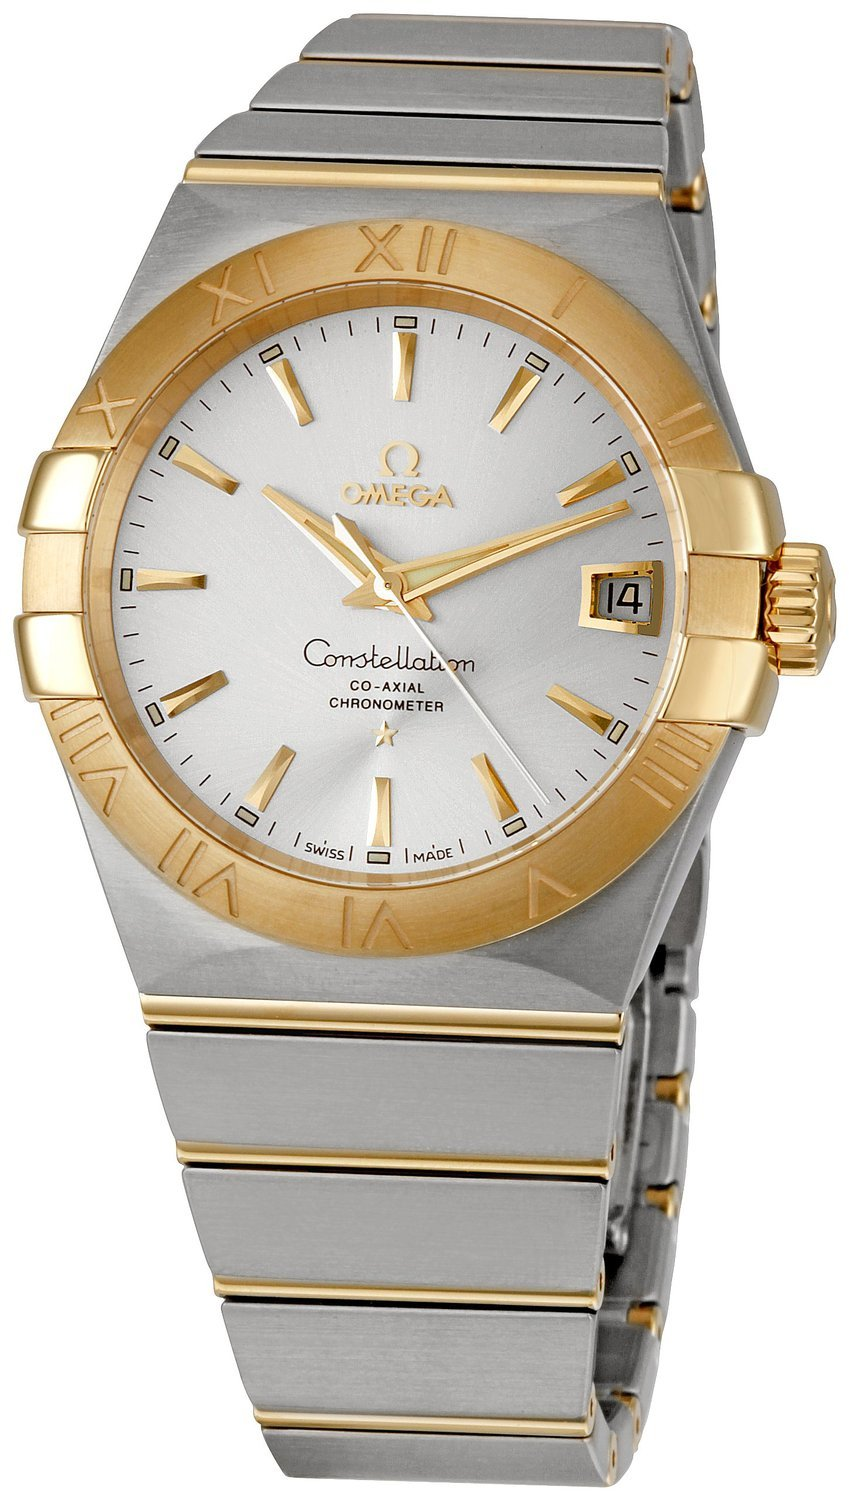 Omega Constellation Co-Axial 38mm Herreur 123.20.38.21.02.002